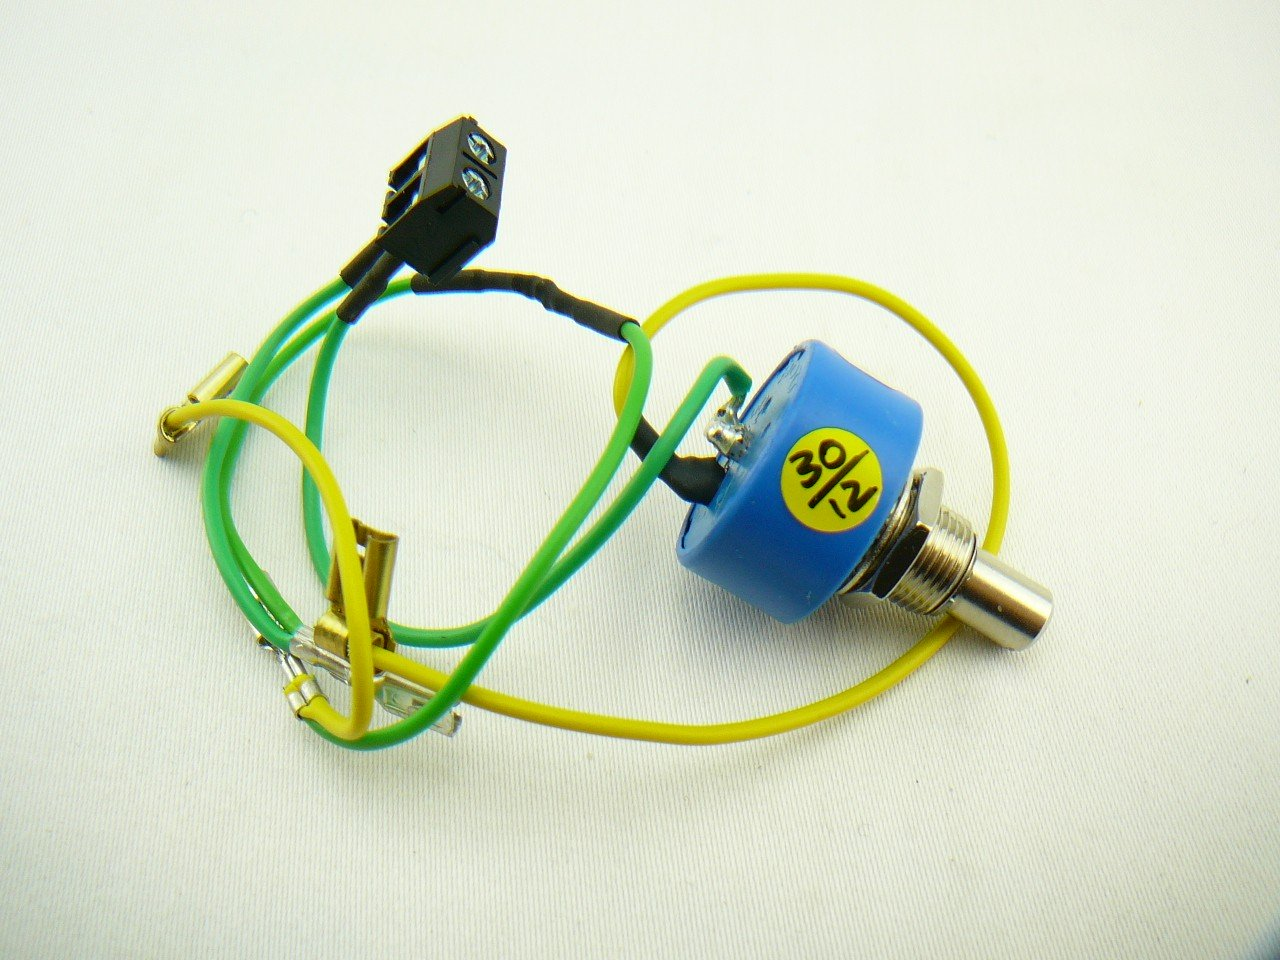 p1070430 golf gear deals replacement parts for powakaddy robbies golf gear Potentiometer Motor Wiring Diagram at aneh.co